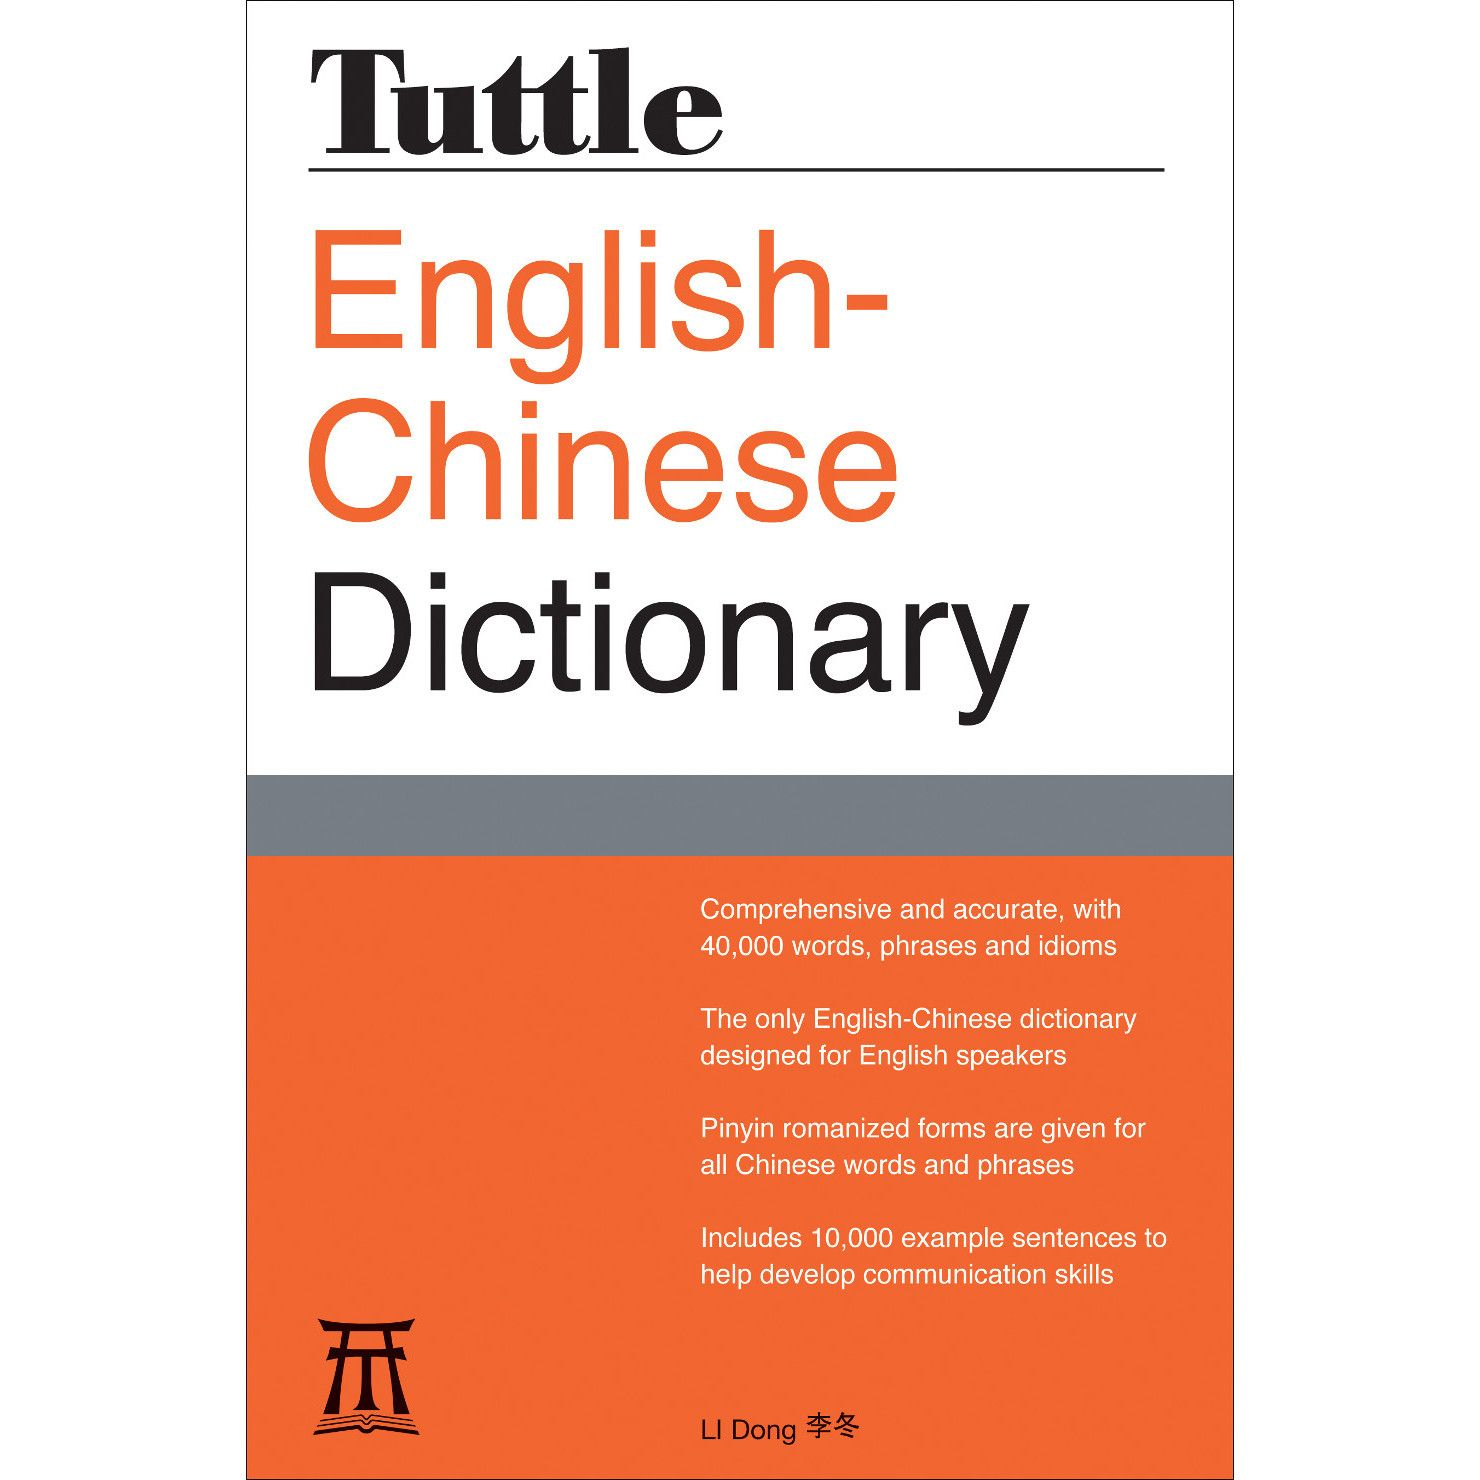 The Tuttle EnglishChinese Dictionary is the only English